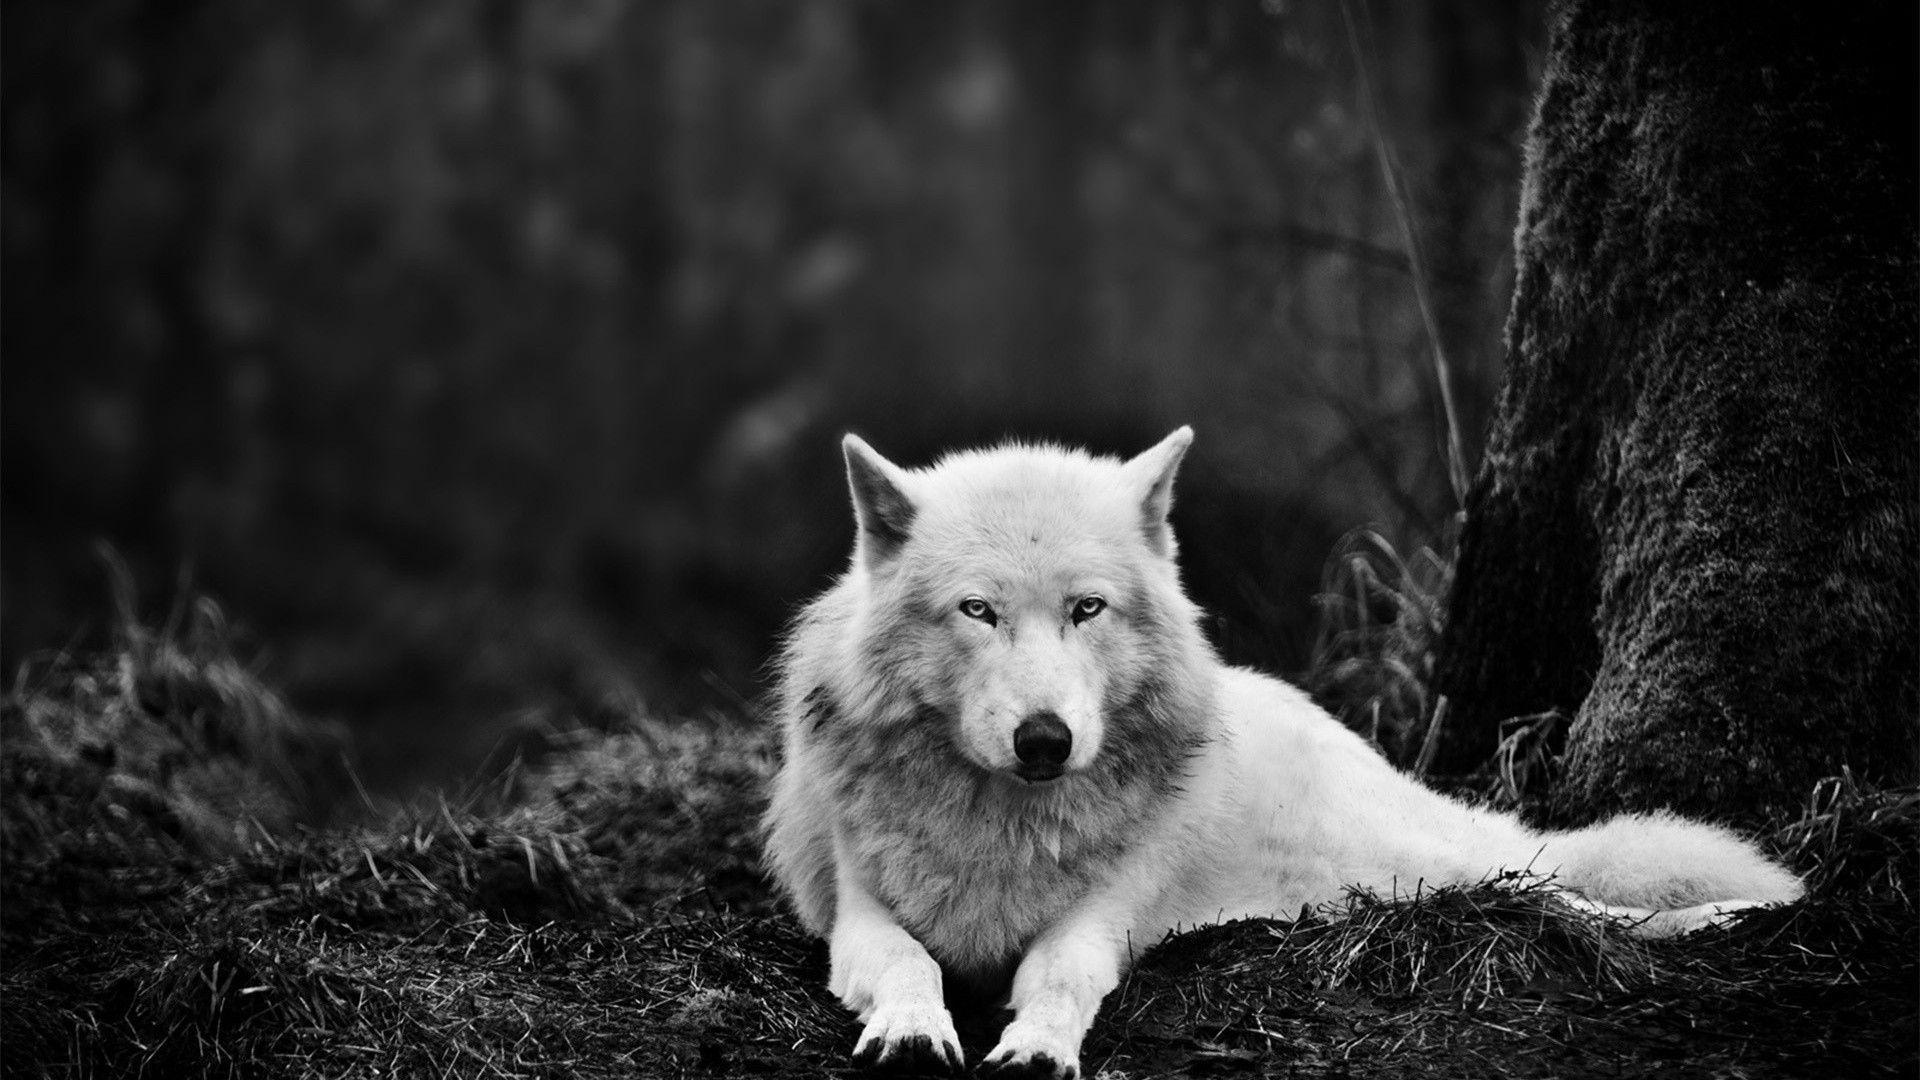 Pin 1920x1080 White Wolf In The Wild Desktop Pc And Mac Wallpaper .